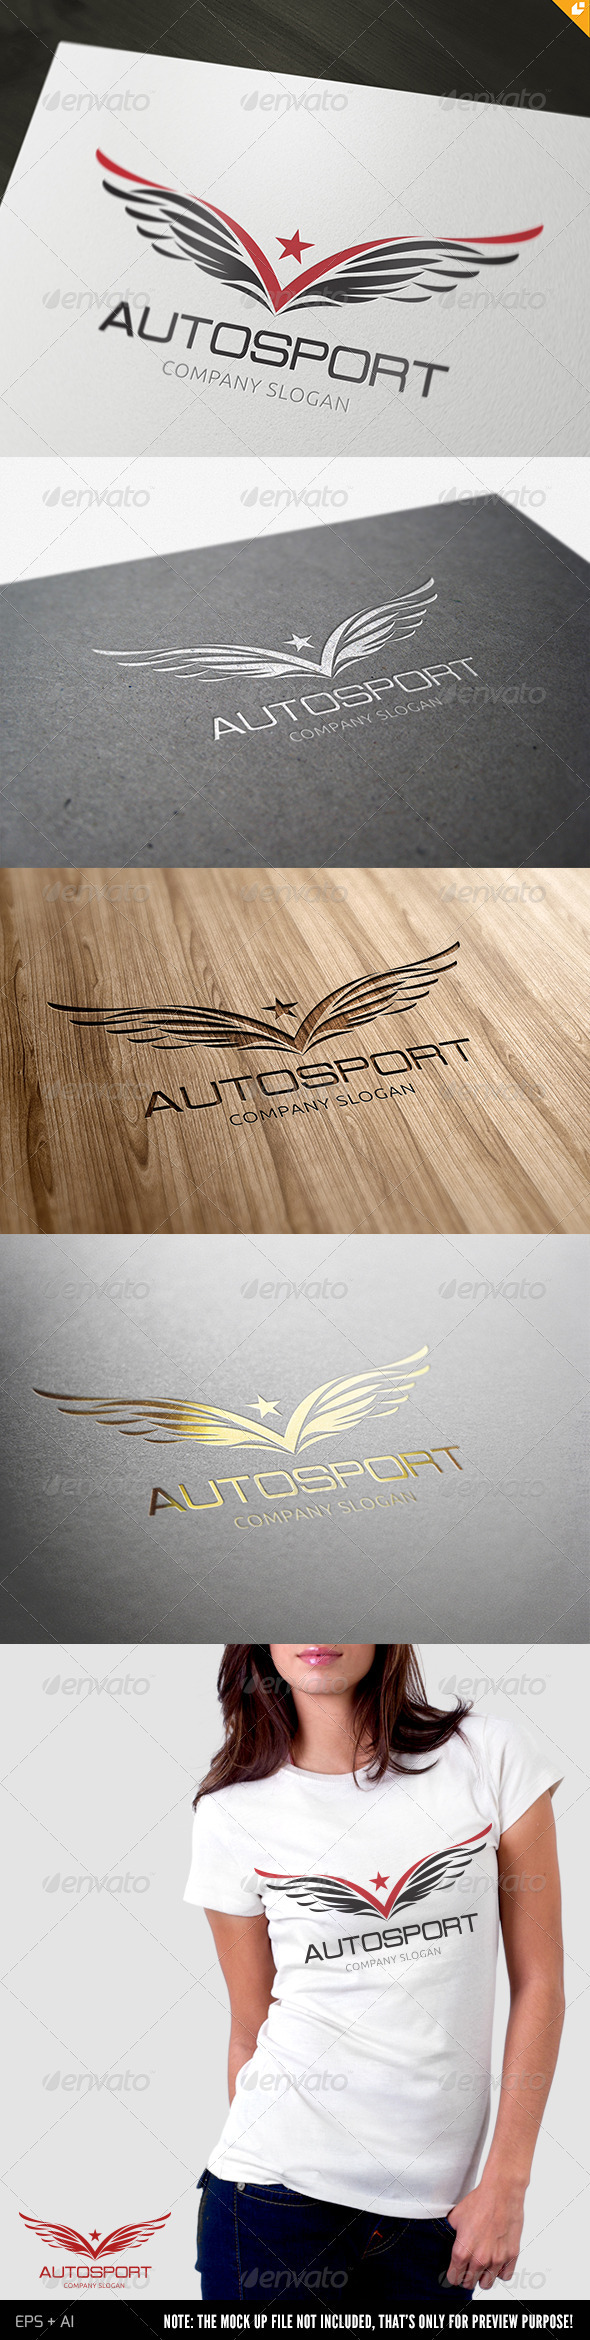 Autosport Logo - Vector Abstract